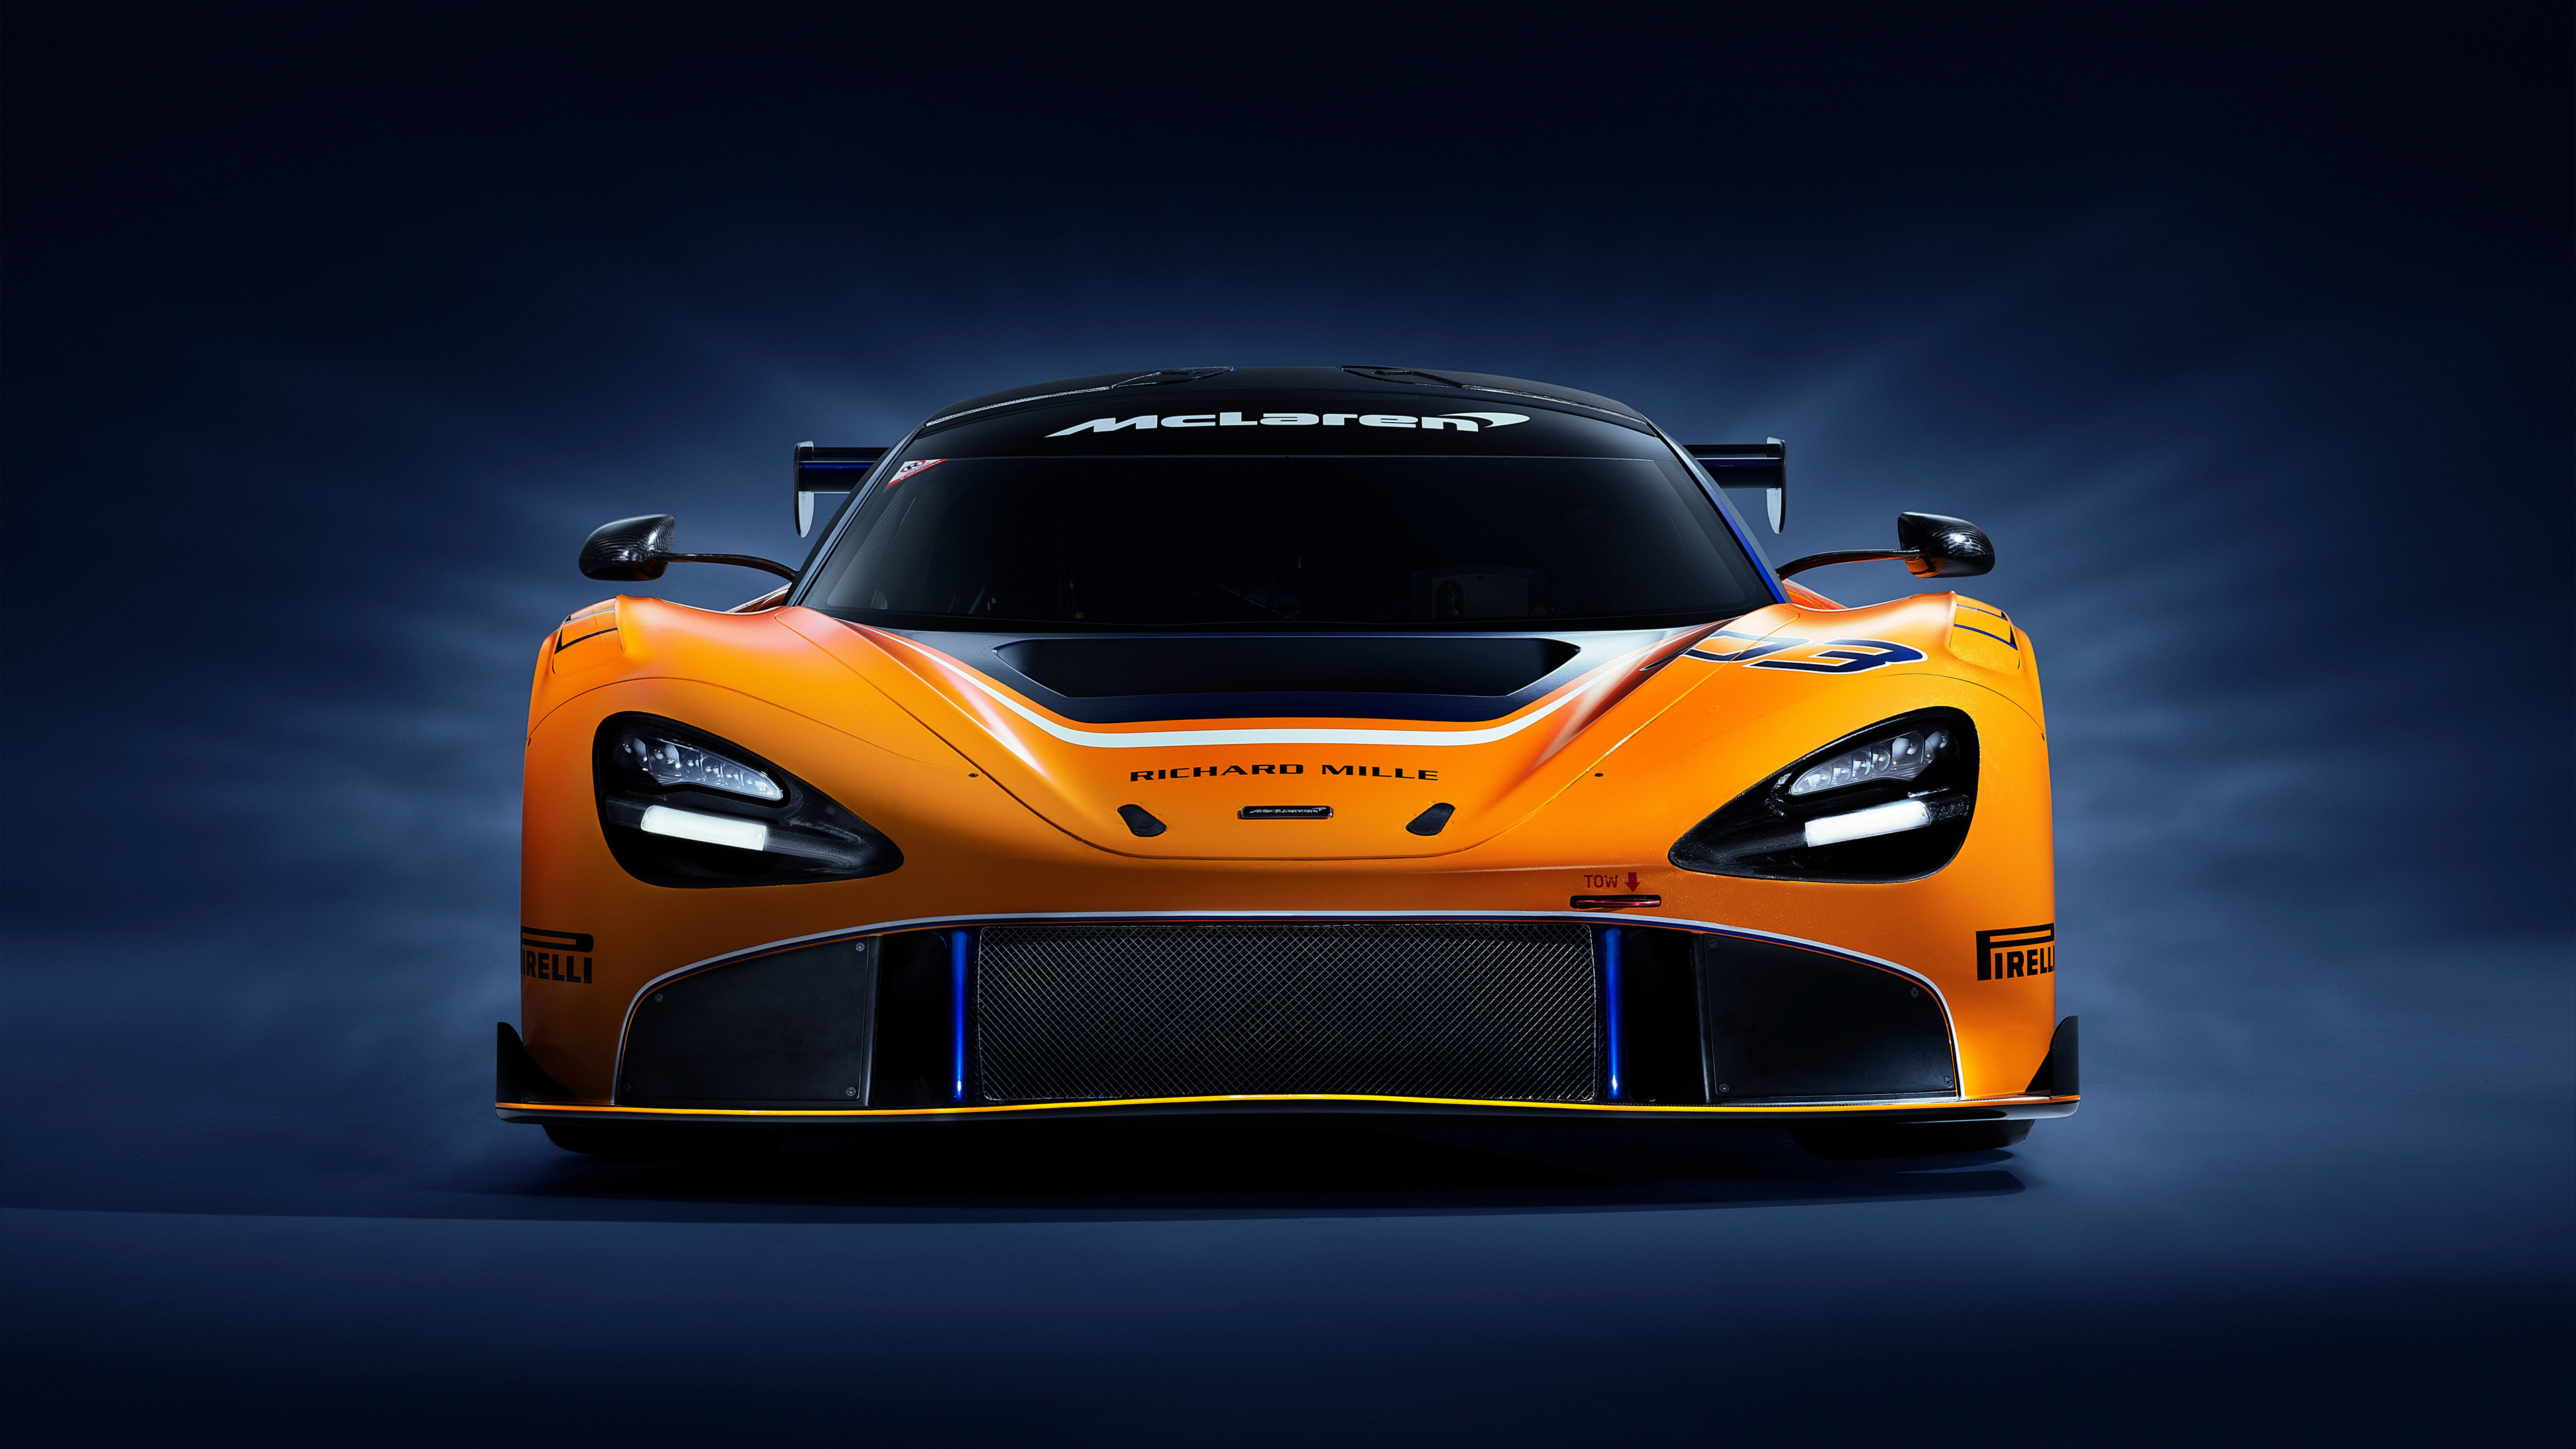 mclaren 720s gt3 2019 front 1539114035 - McLaren 720S GT3 2019 Front - mclaren wallpapers, mclaren 720s wallpapers, mclaren 720s gt3 wallpapers, hd-wallpapers, cars wallpapers, 4k-wallpapers, 2019 cars wallpapers